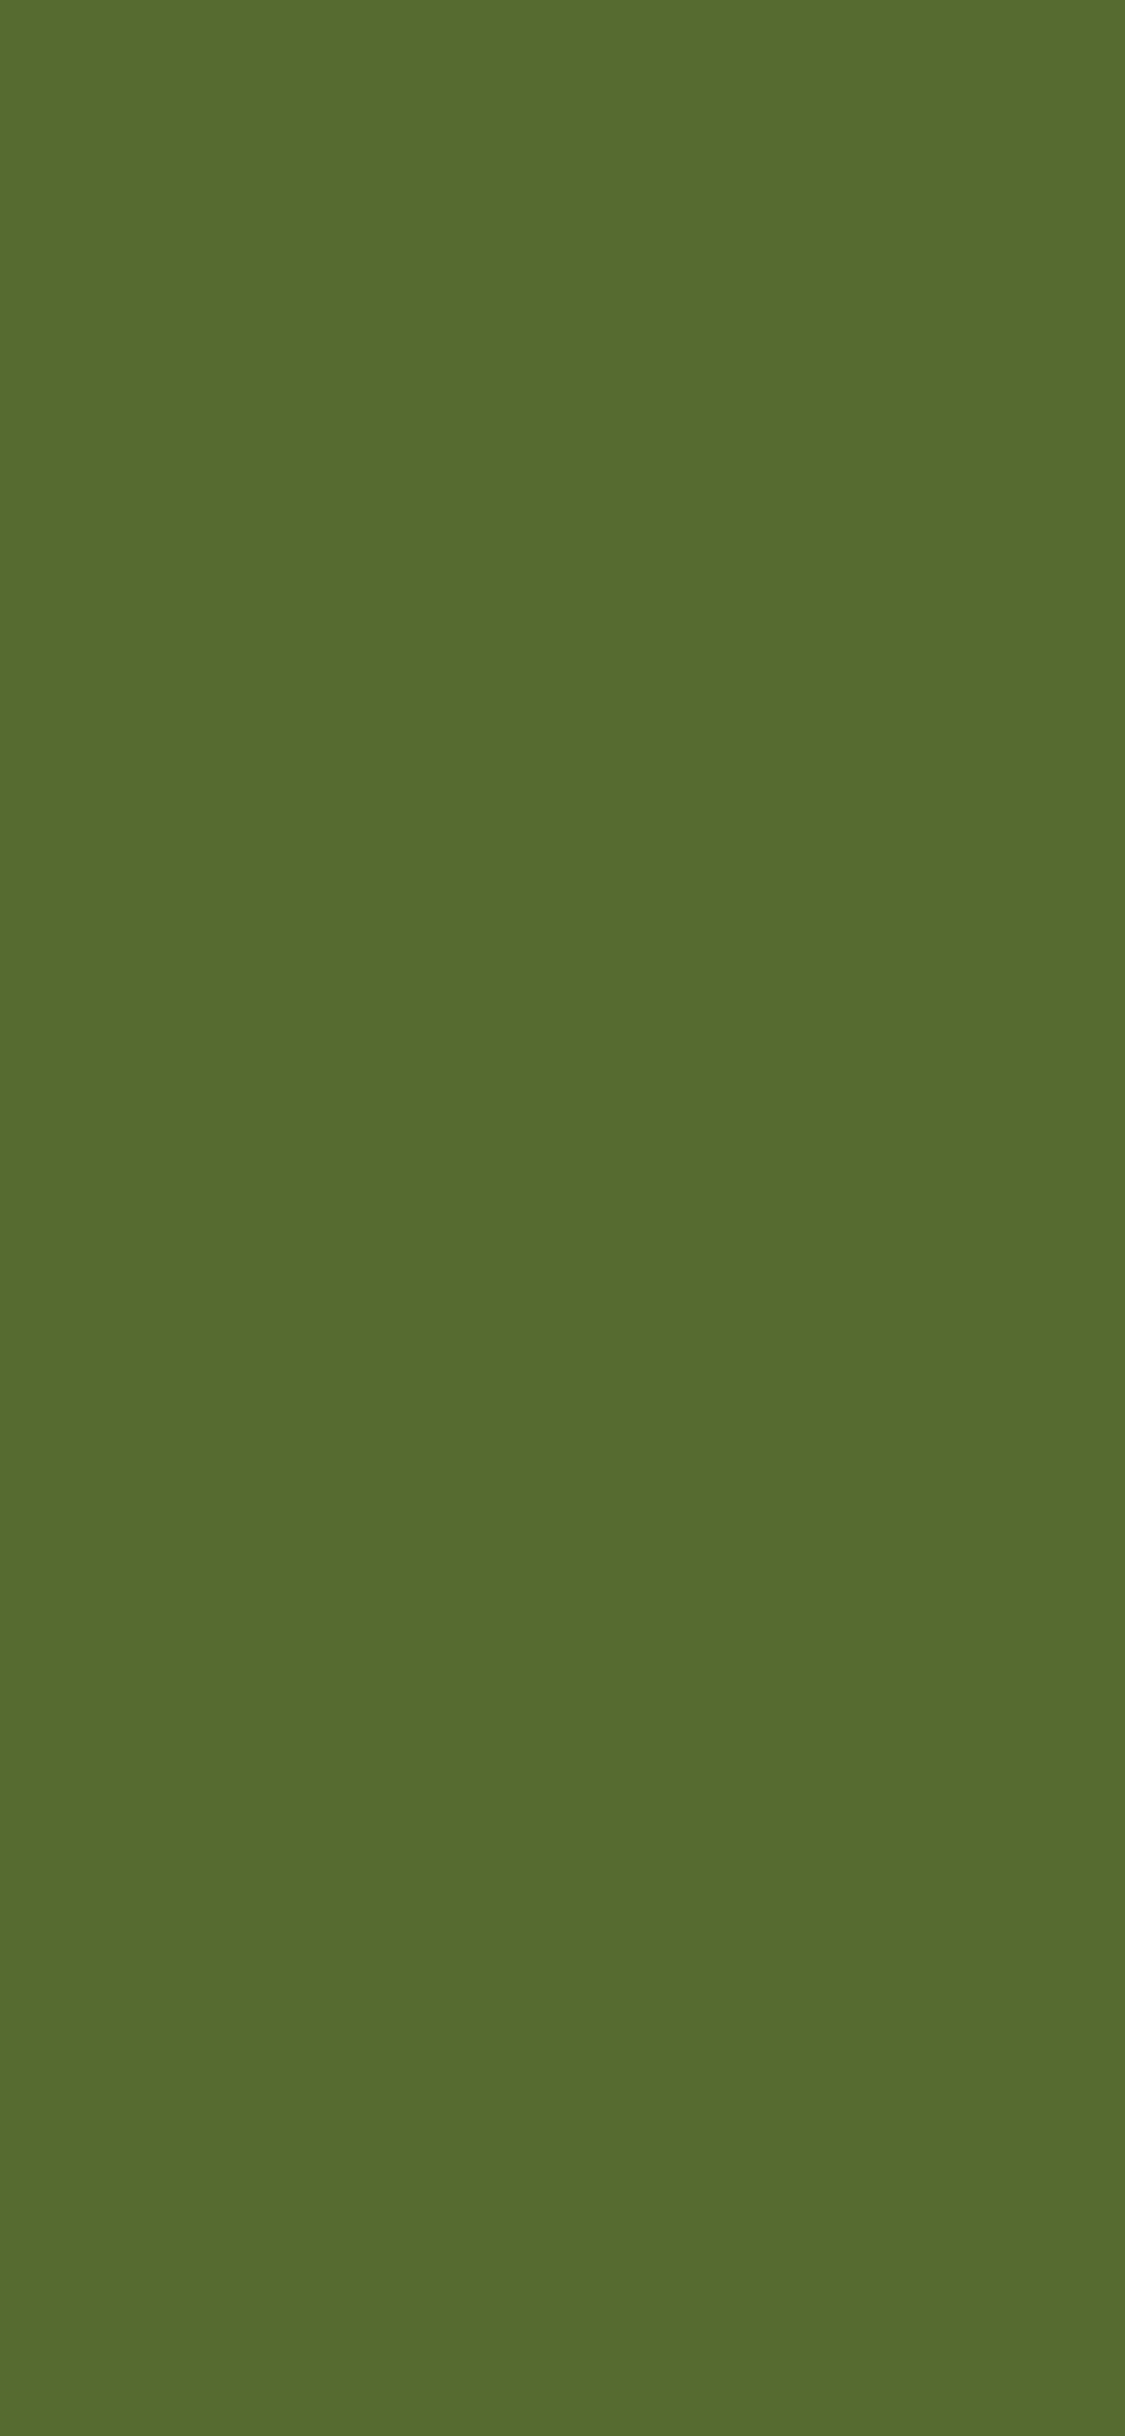 1125x2436 Dark Olive Green Solid Color Background